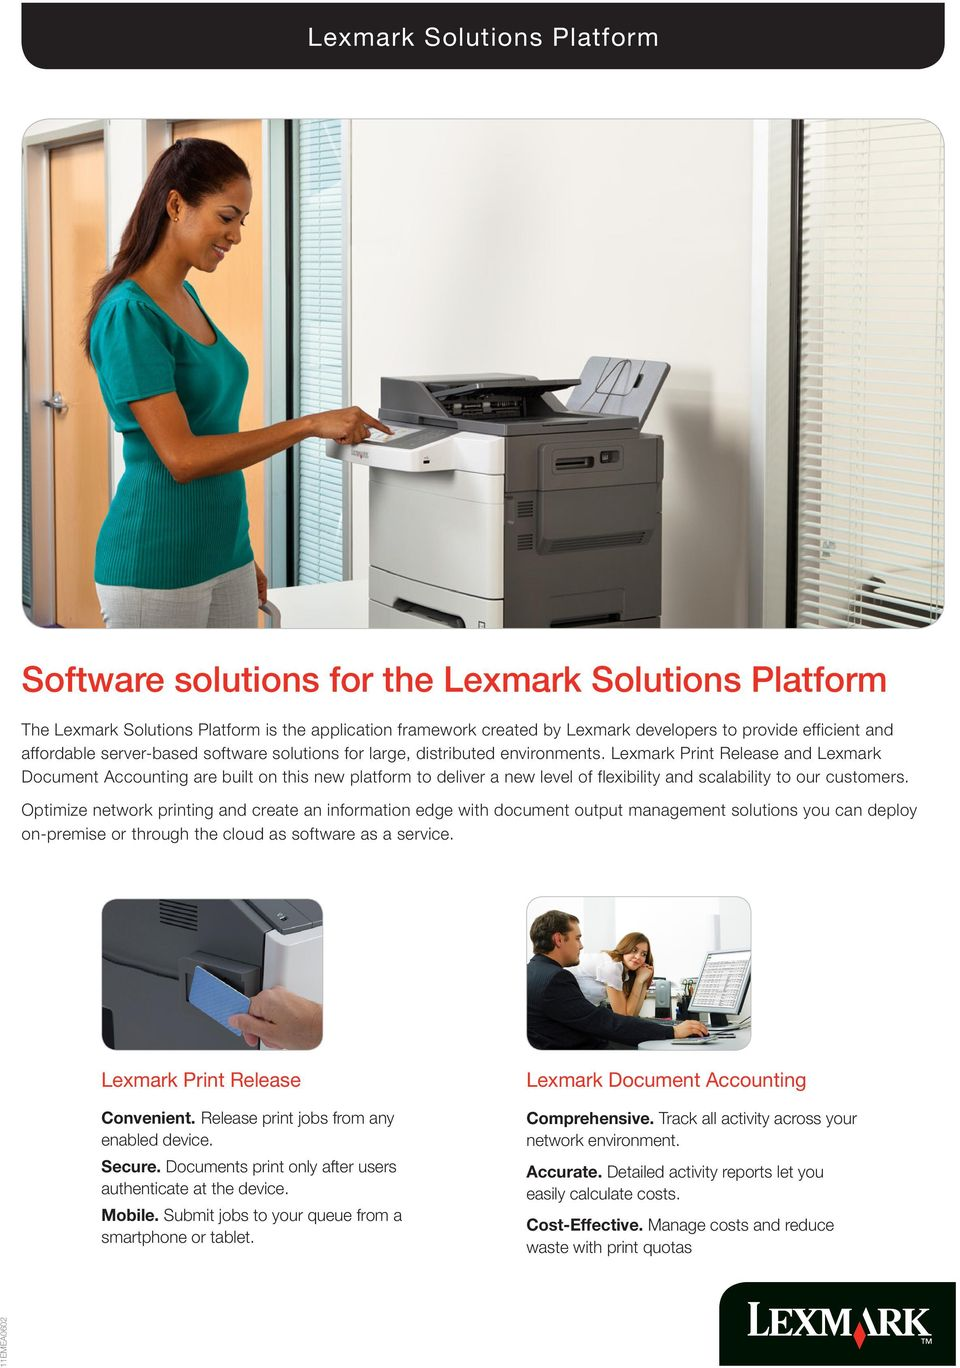 Lexmark Print Release and Lexmark Document Accounting are built on this new platform to deliver a new level of flexibility and scalability to our customers.